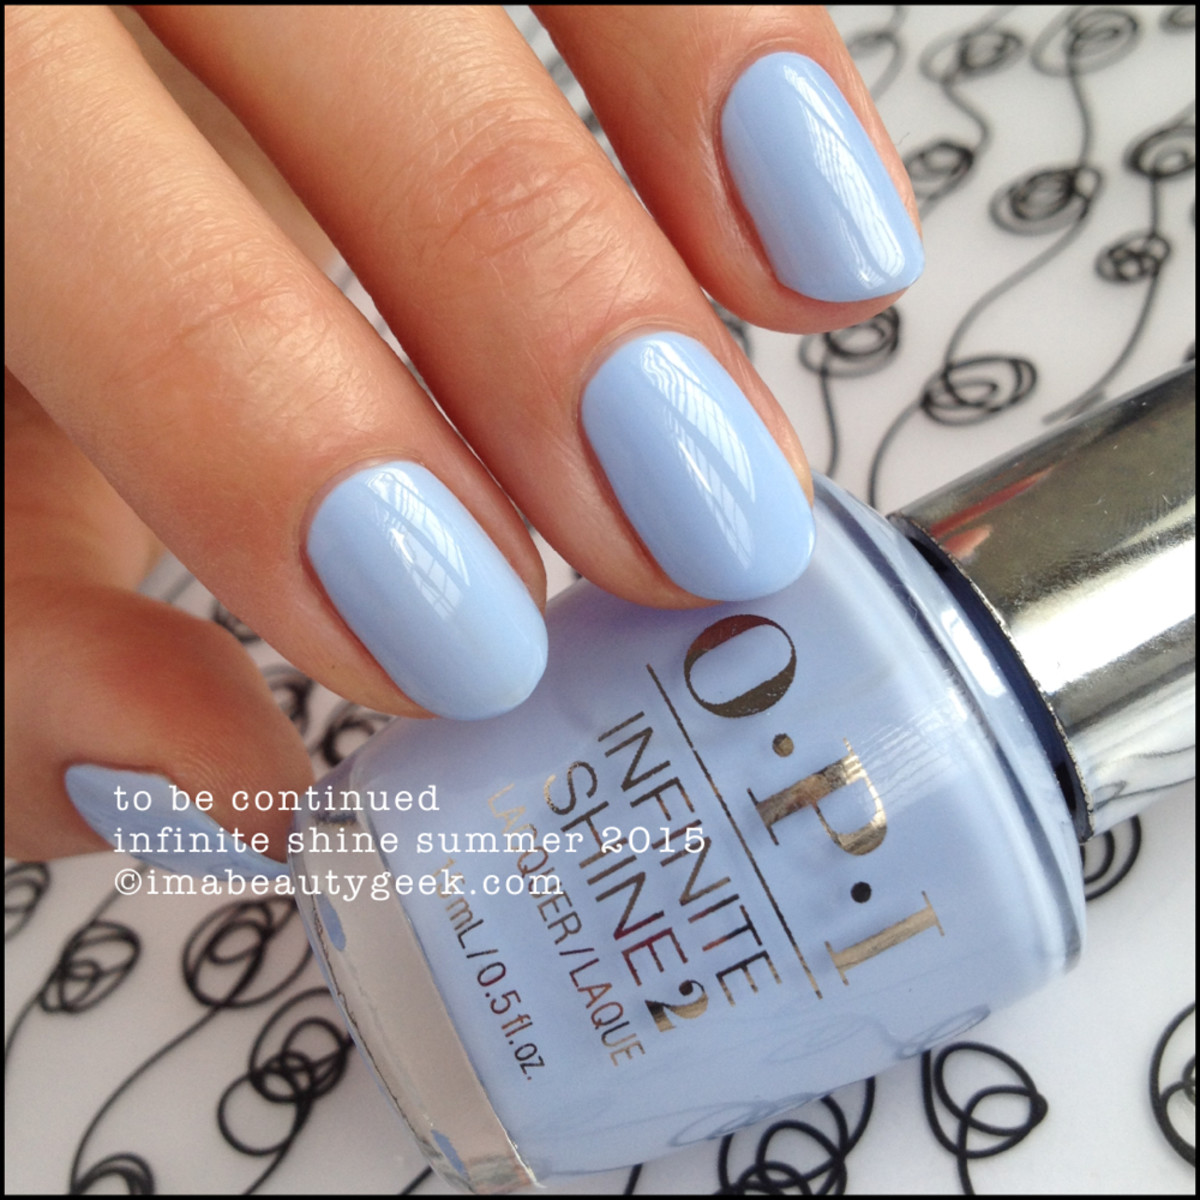 OPI Infinite Shine OPI To Be Continued Summer 2015